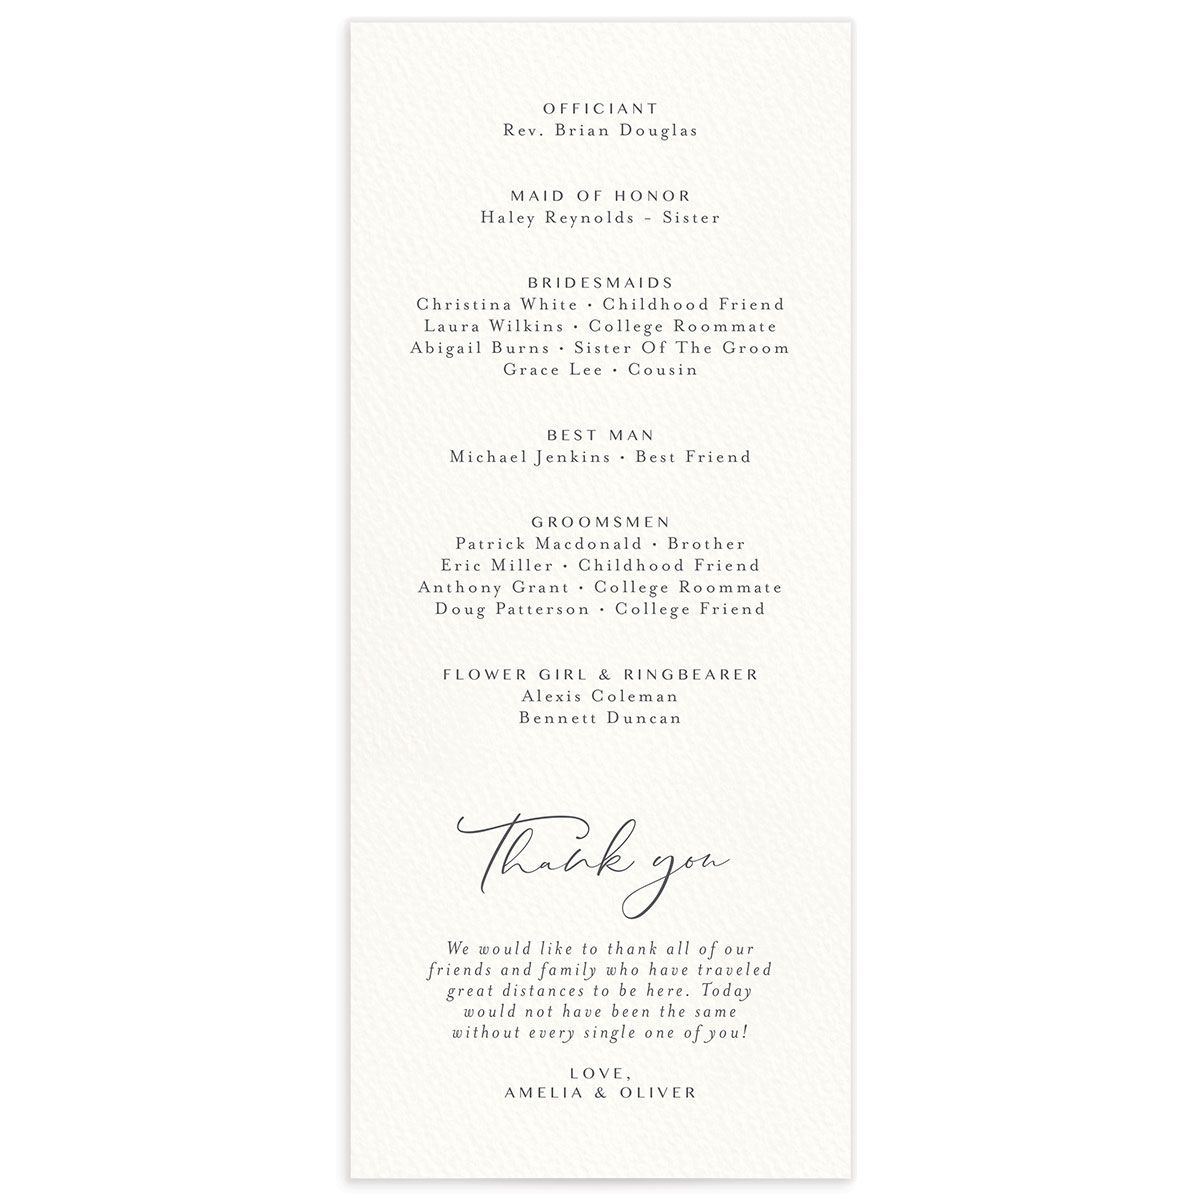 Coastal Love wedding programs back in grey